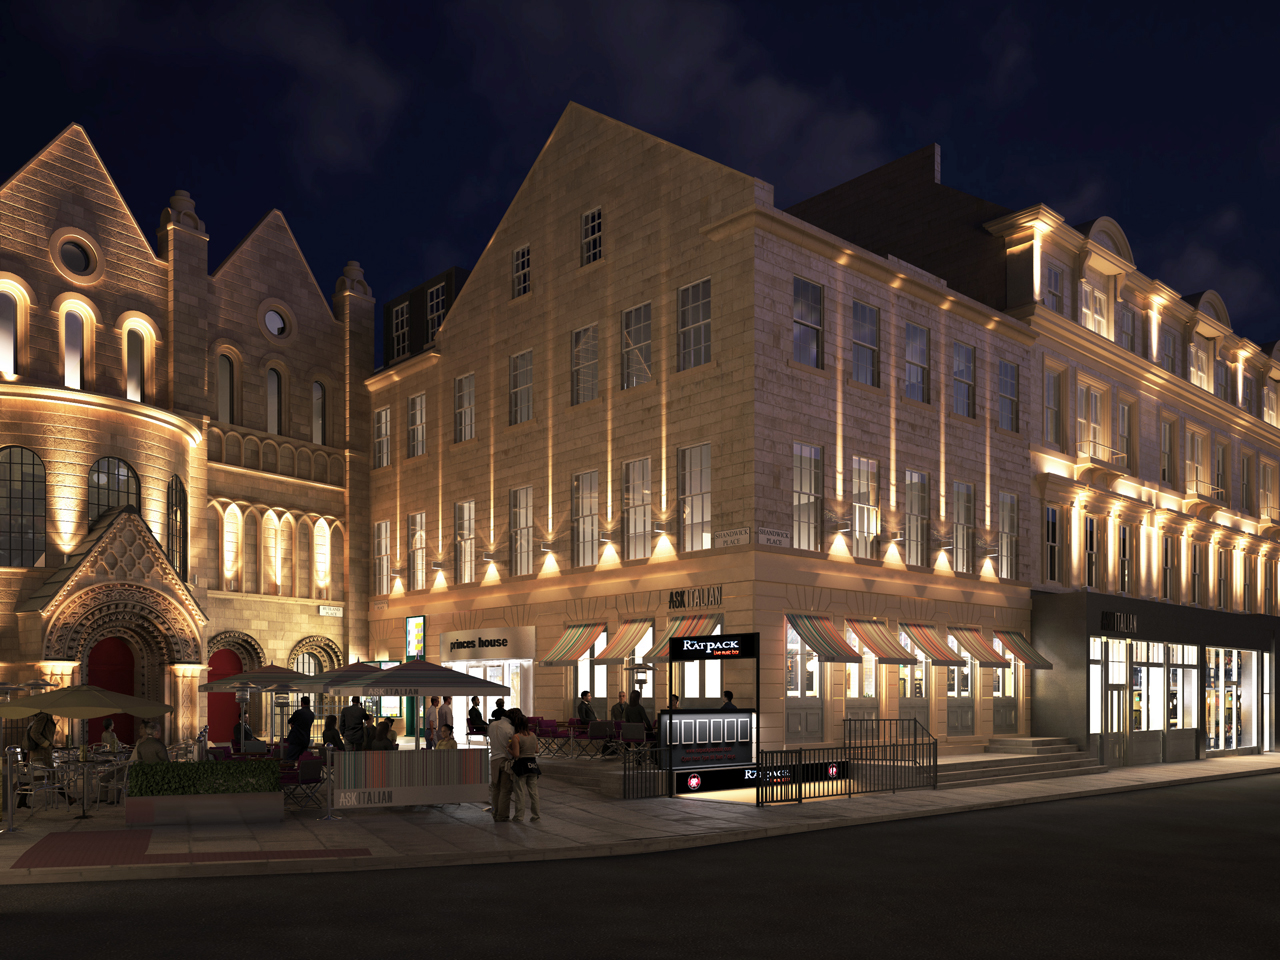 The exact lighting scheme was visualised to gain Counci approval